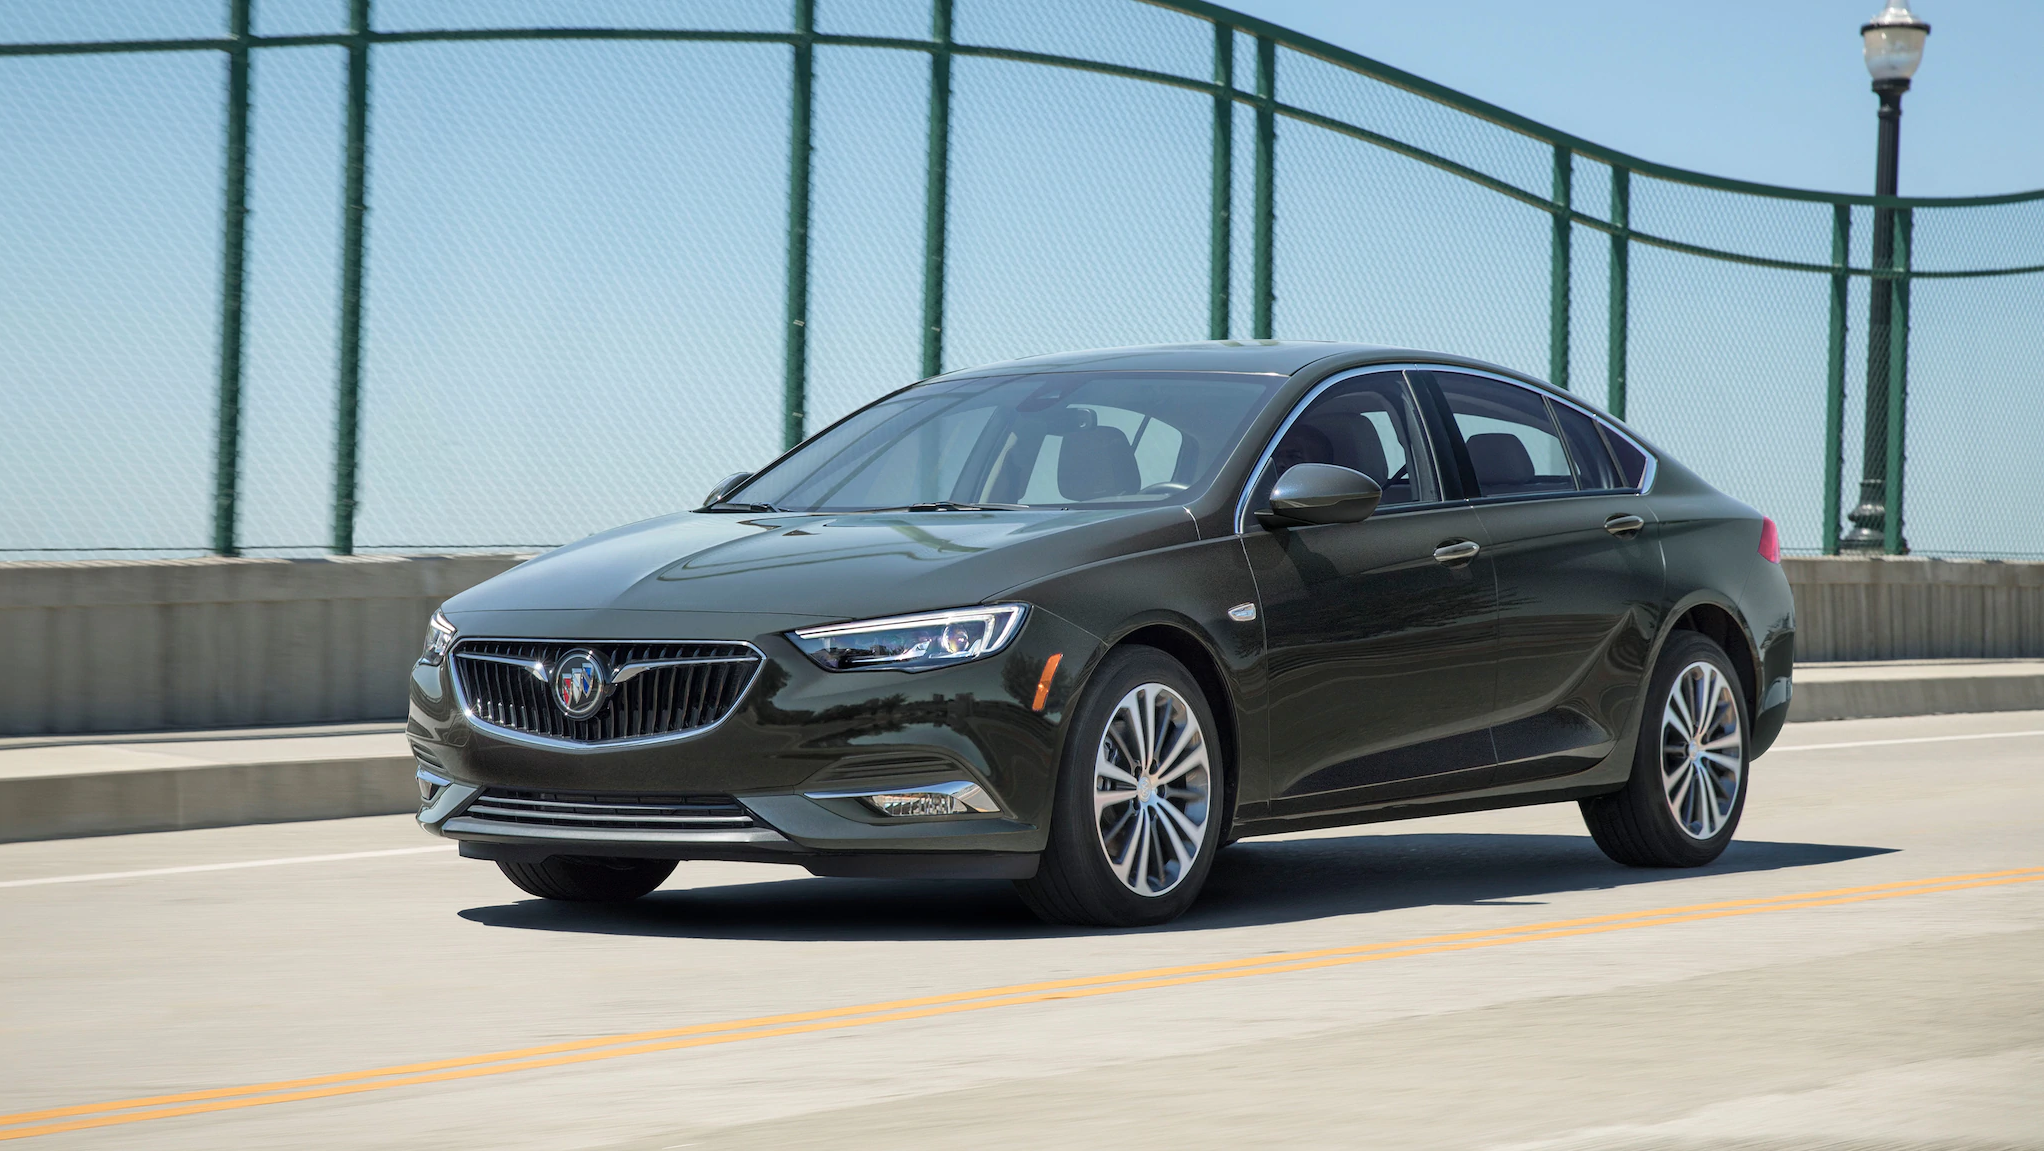 49 New 2020 Buick Regal Sportback Specs and Review by 2020 Buick Regal Sportback